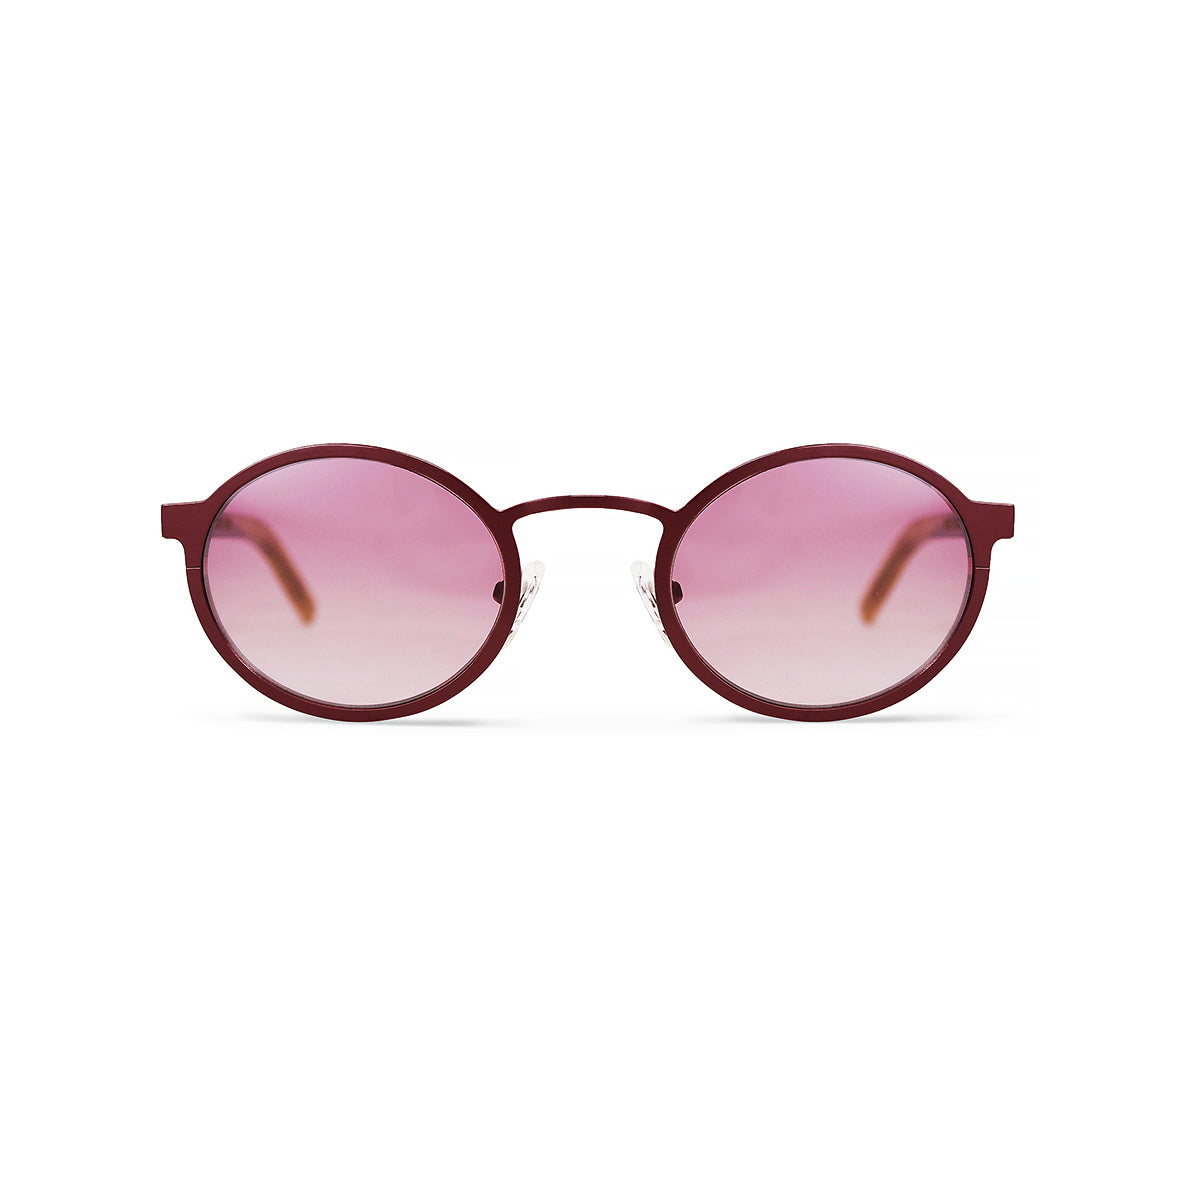 Metal / Horn. Crimson / Light Tortoise. Blush Lens. - BLYSZAK eyewear eyewear - eyewear, optical, sunglasses